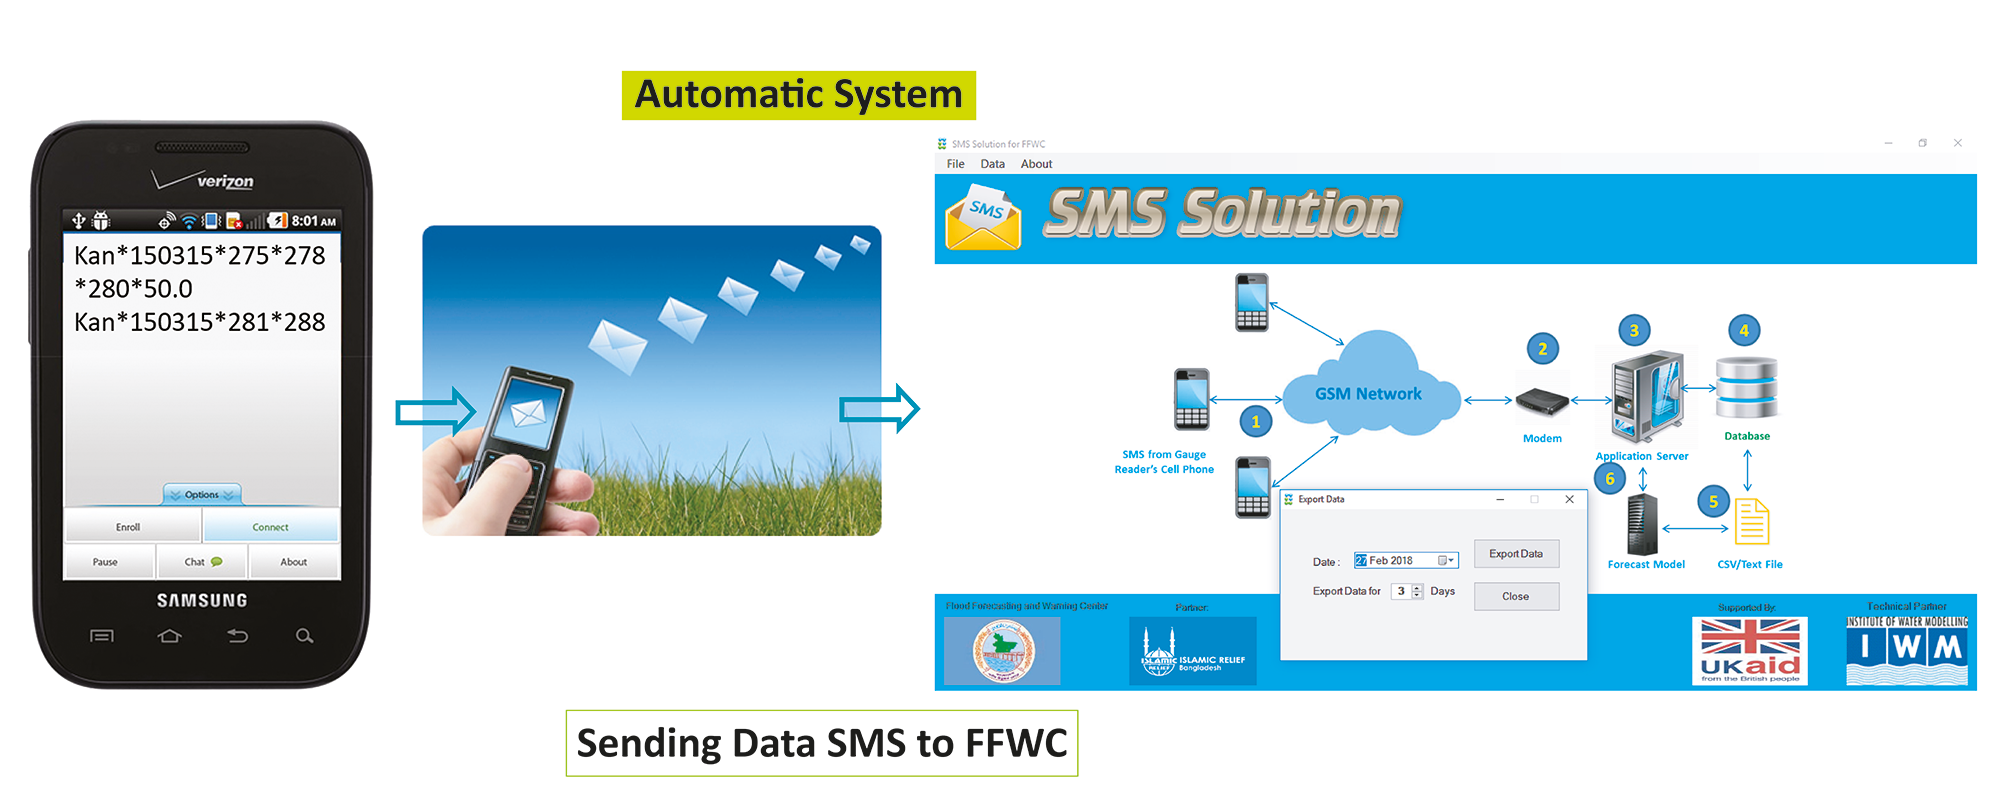 Data transmission through the SMS system